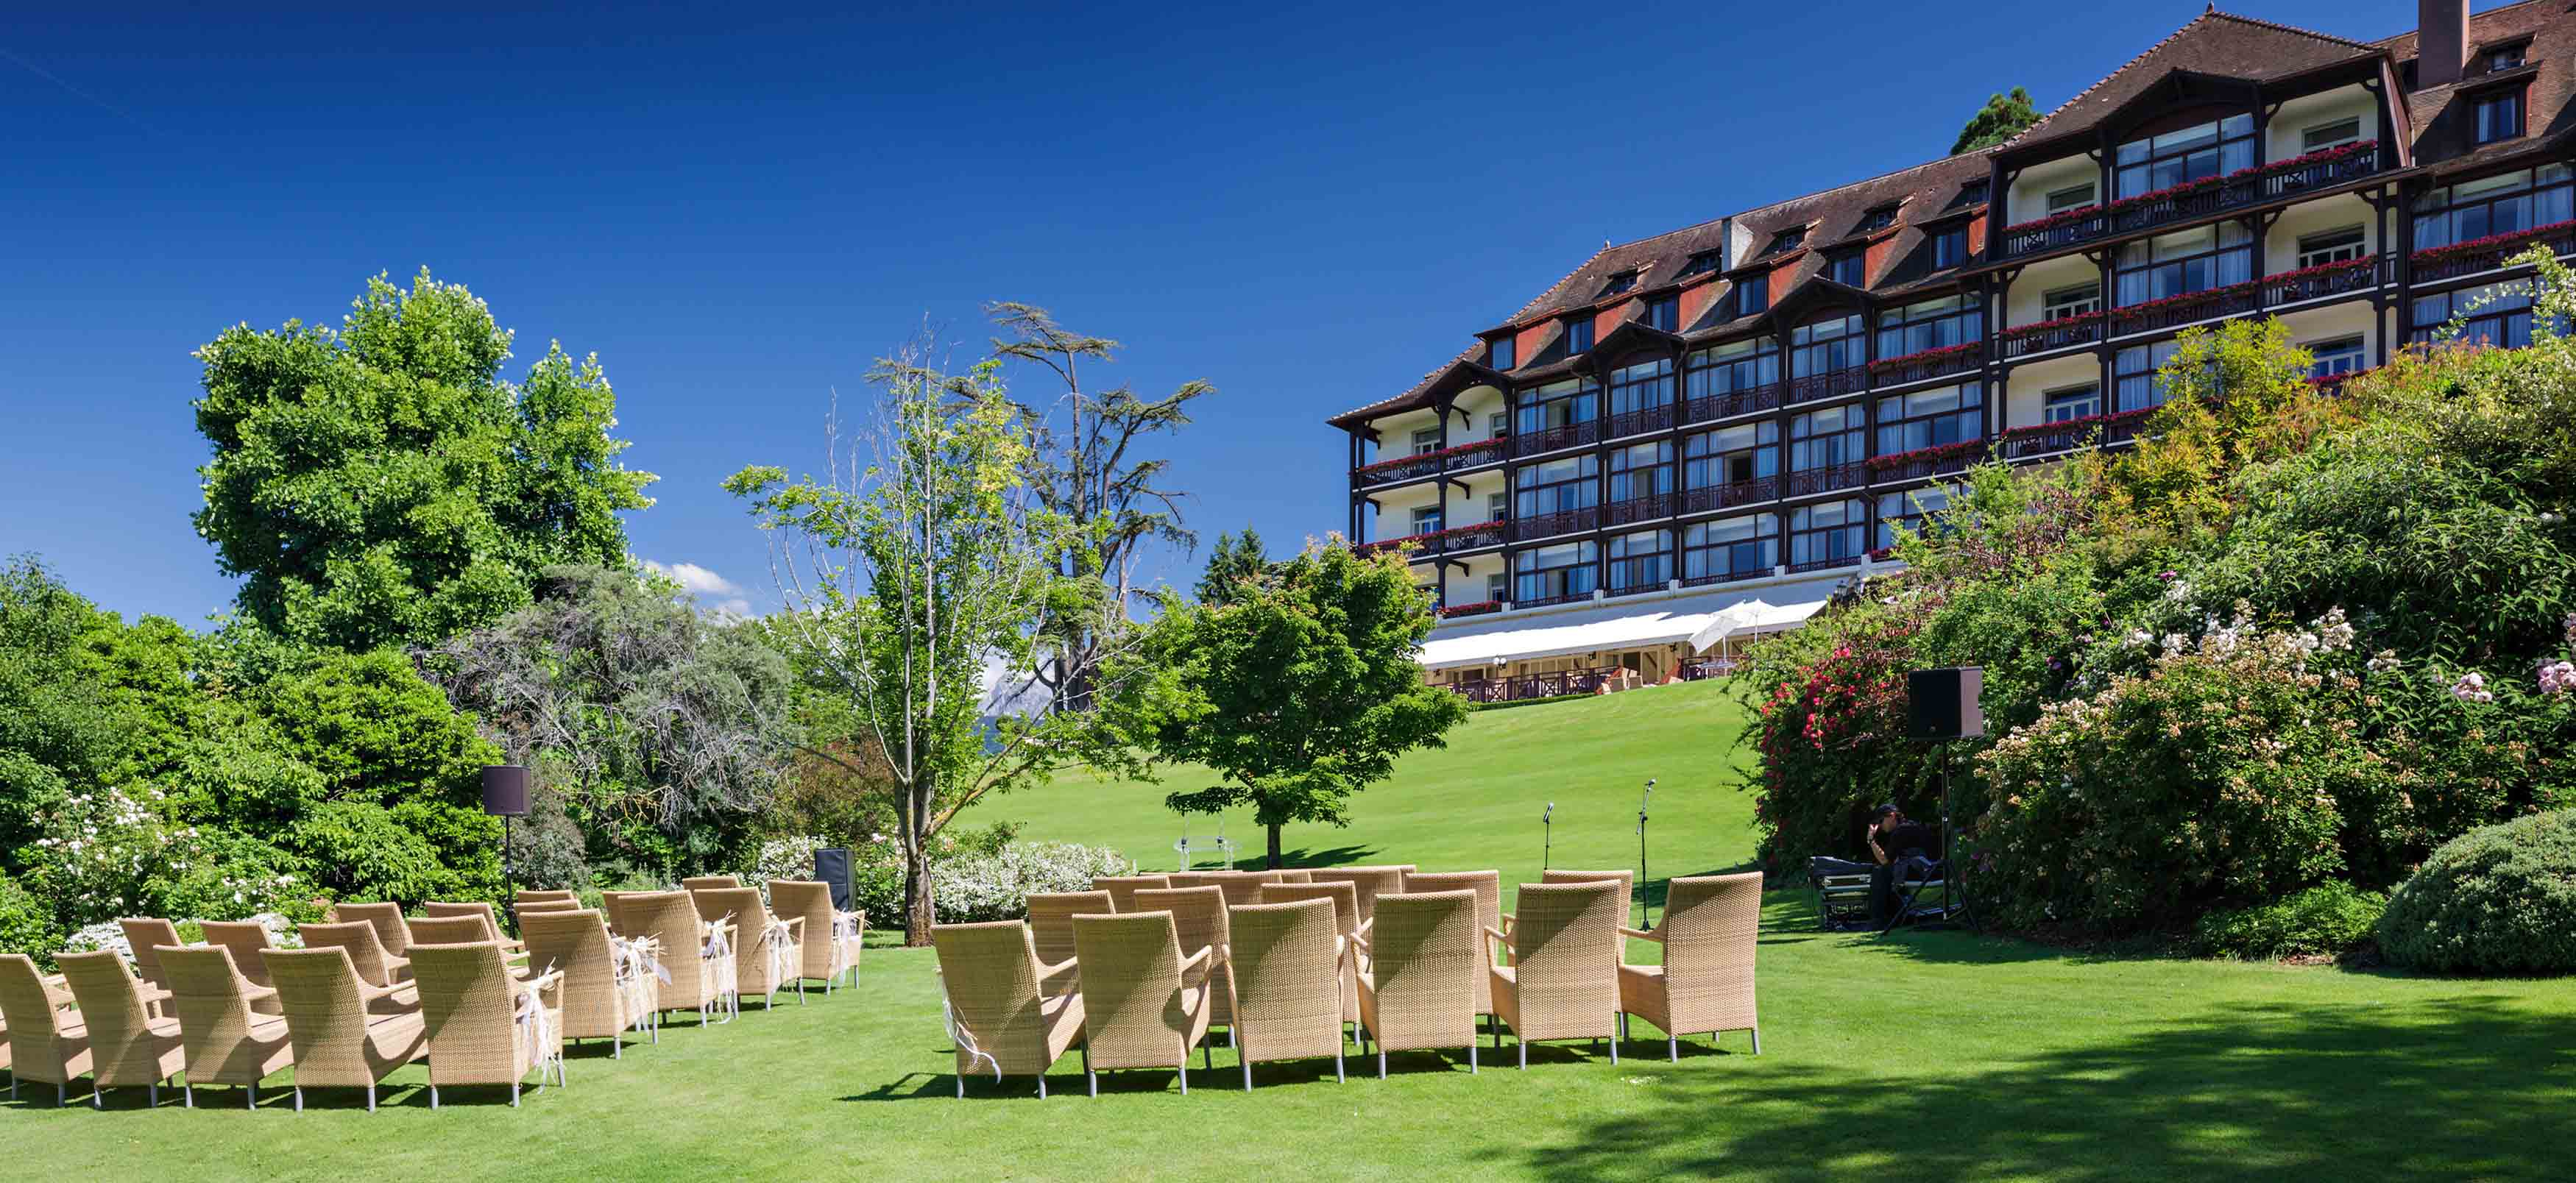 Thonon Les Bains Hotel Reception Events Luxury Wedding 4 5 Star Hotels Evian France